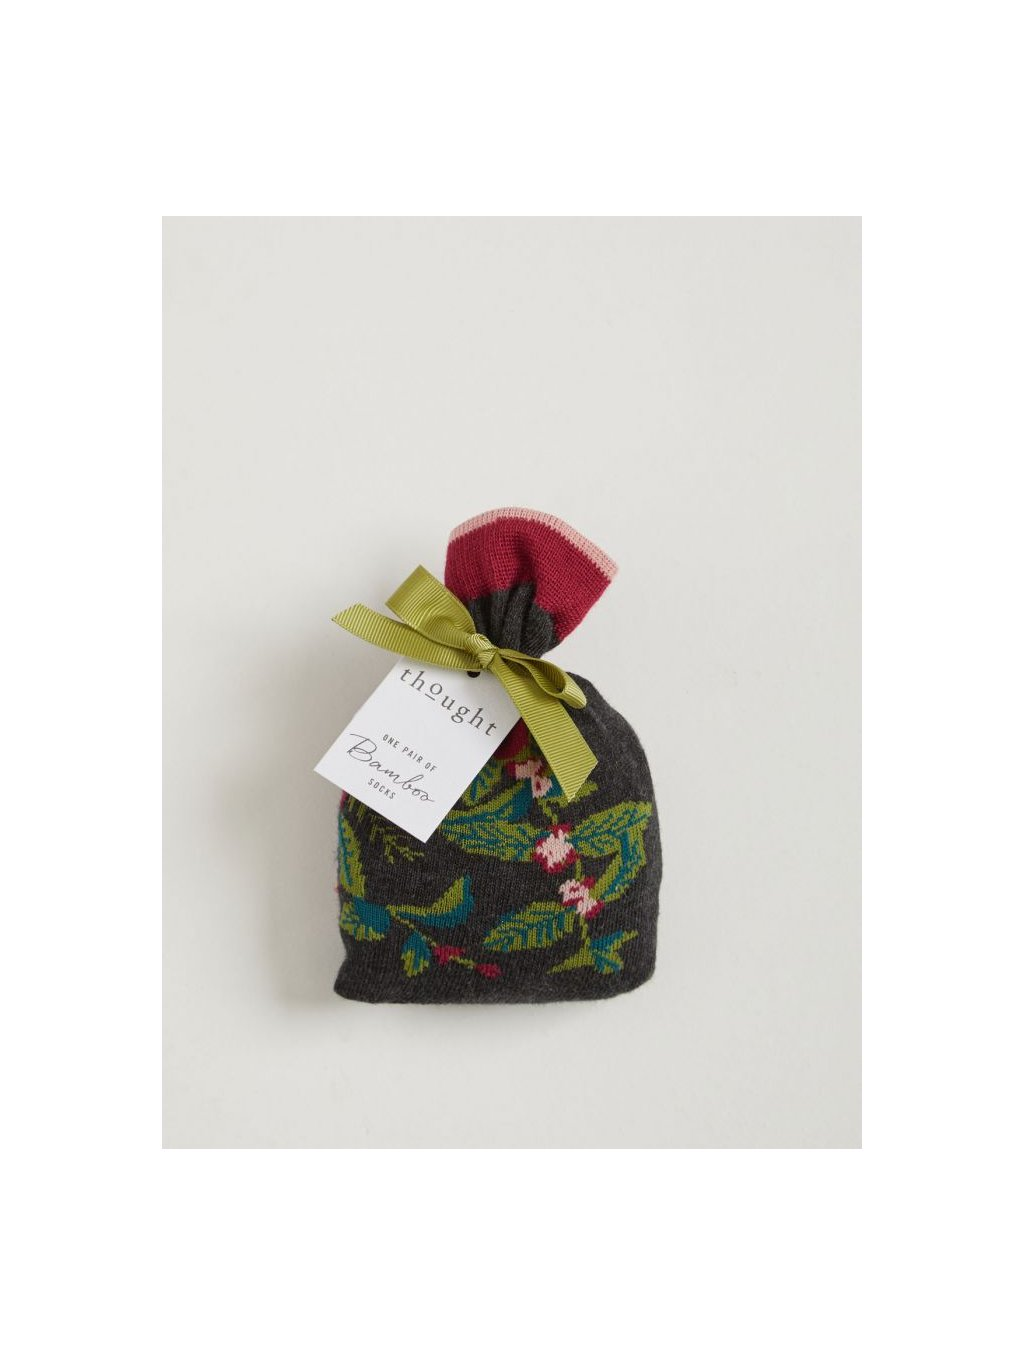 sbw4530 blooms floral blooms bamboo socks in a bag 1